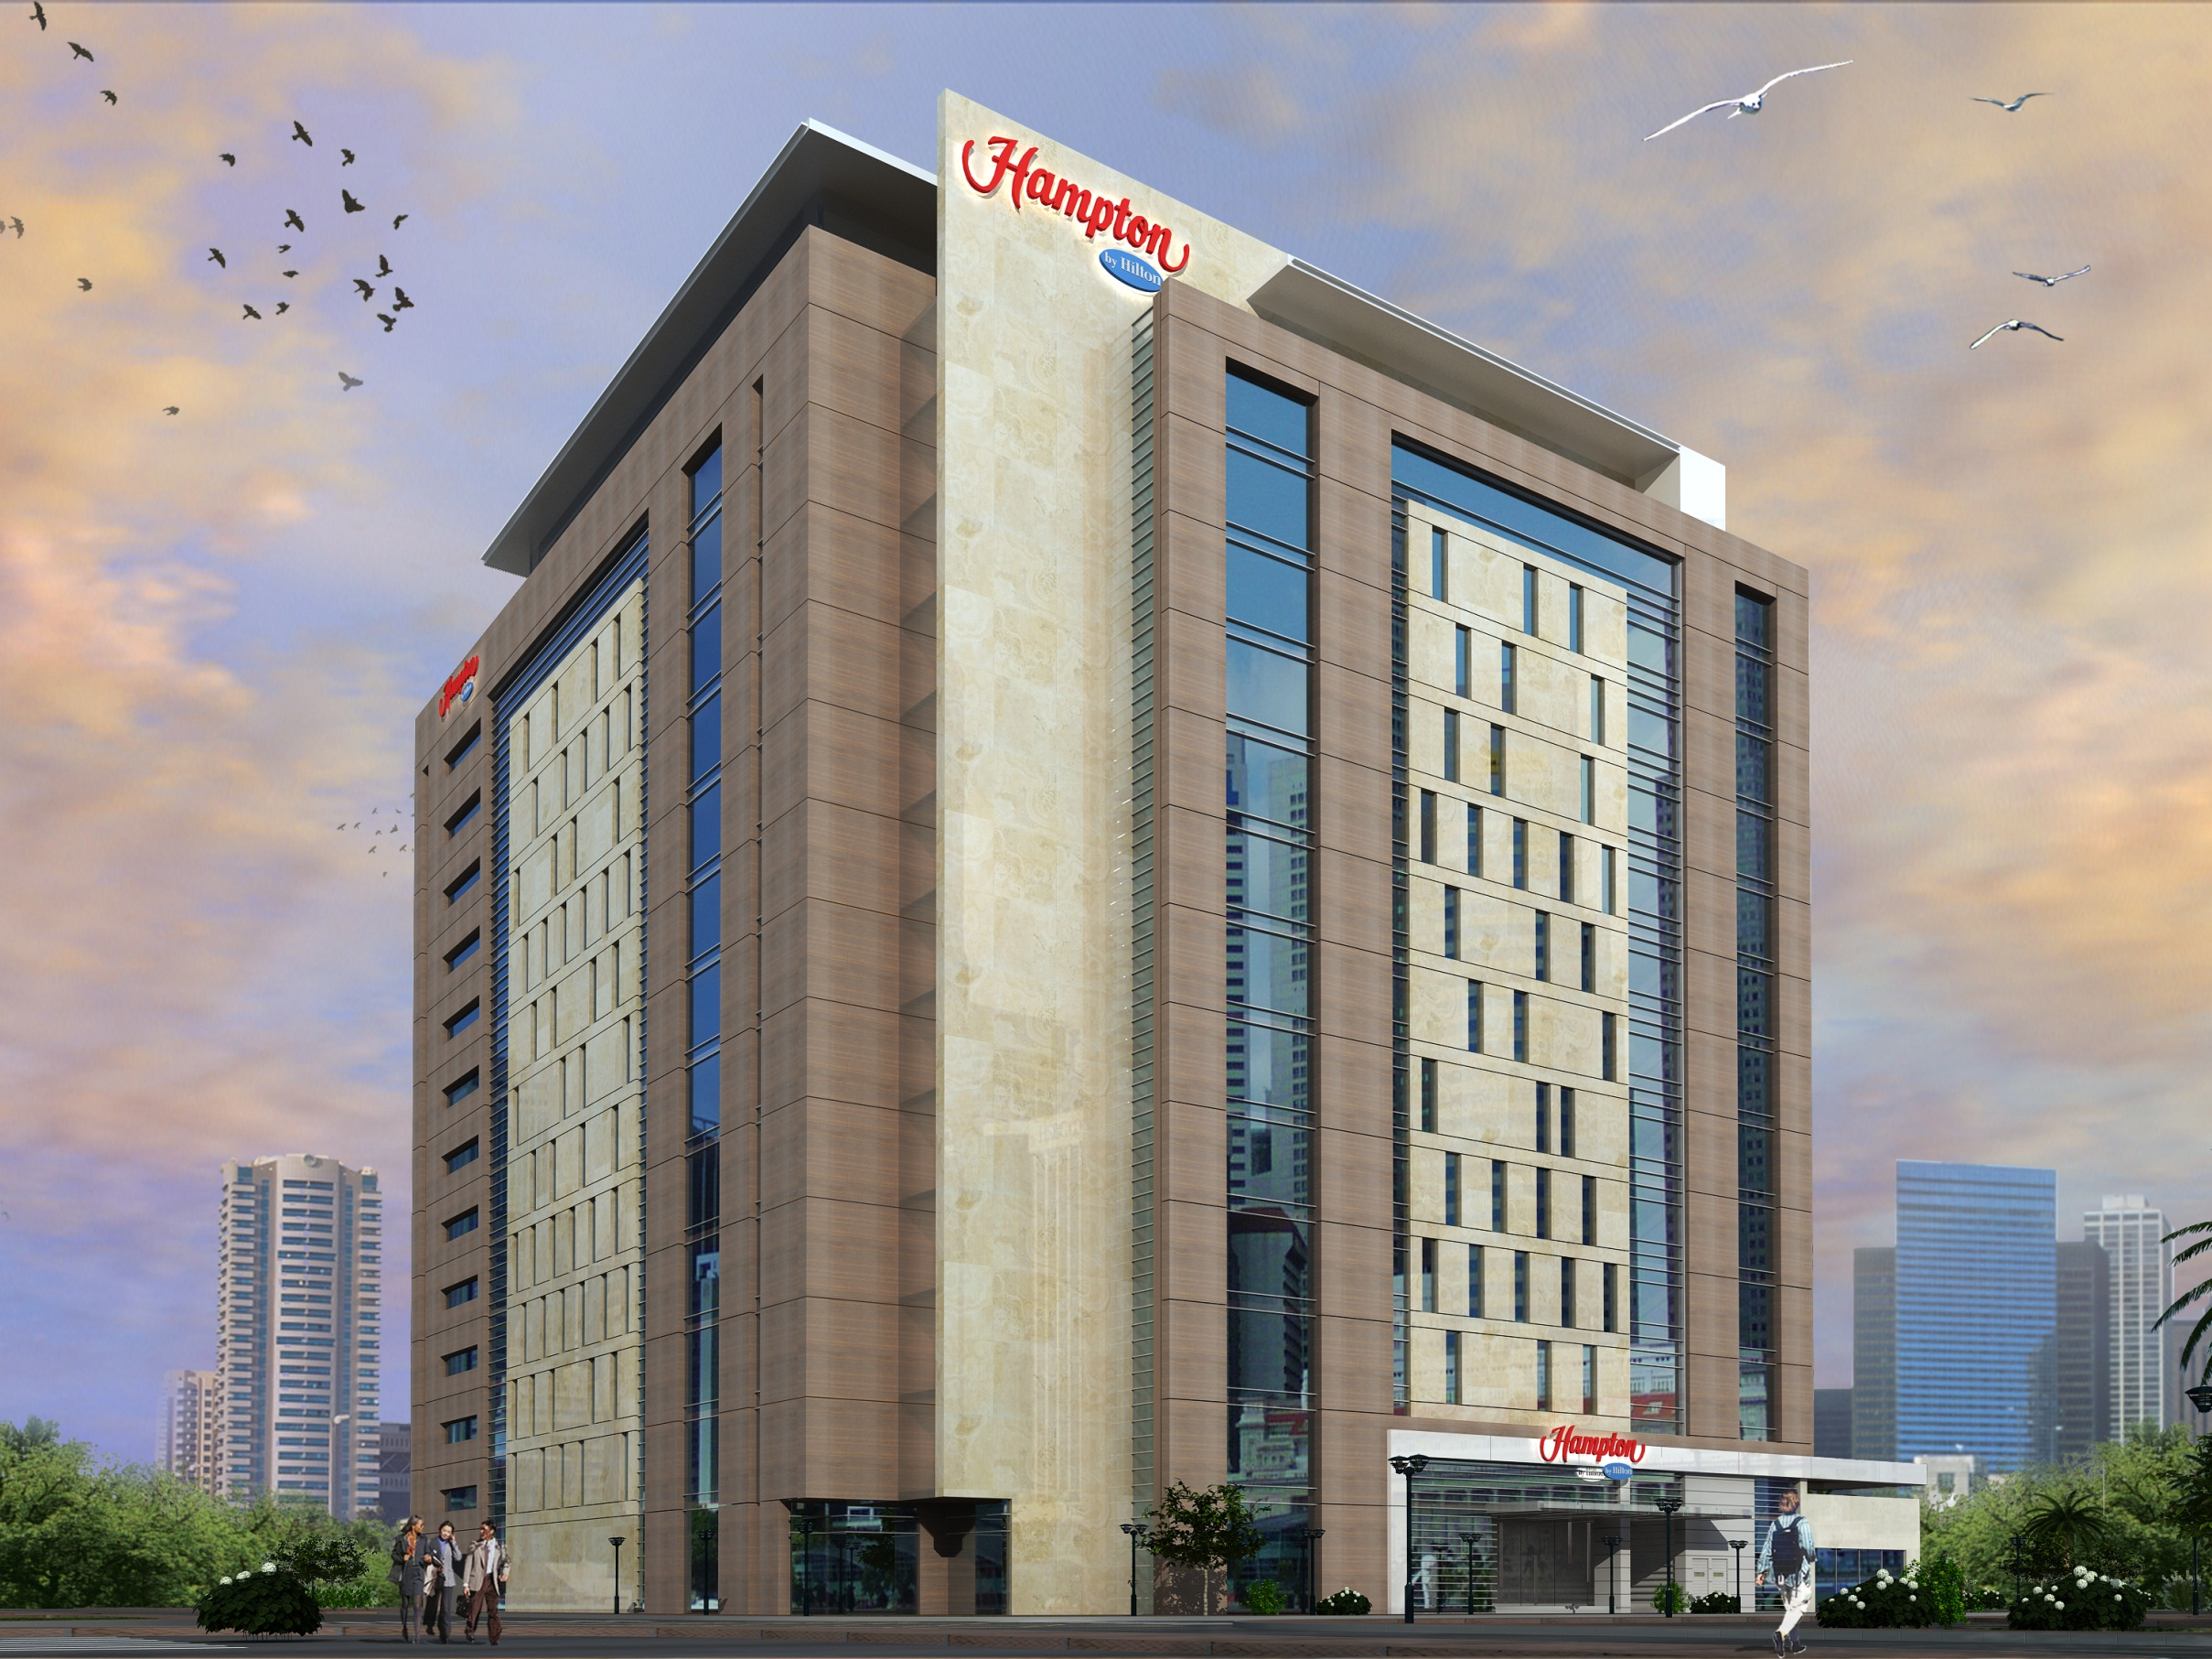 hampton by hilton wiring diagram 7 pin trailer socket uk world s largest opens in dubai hospitality net airport